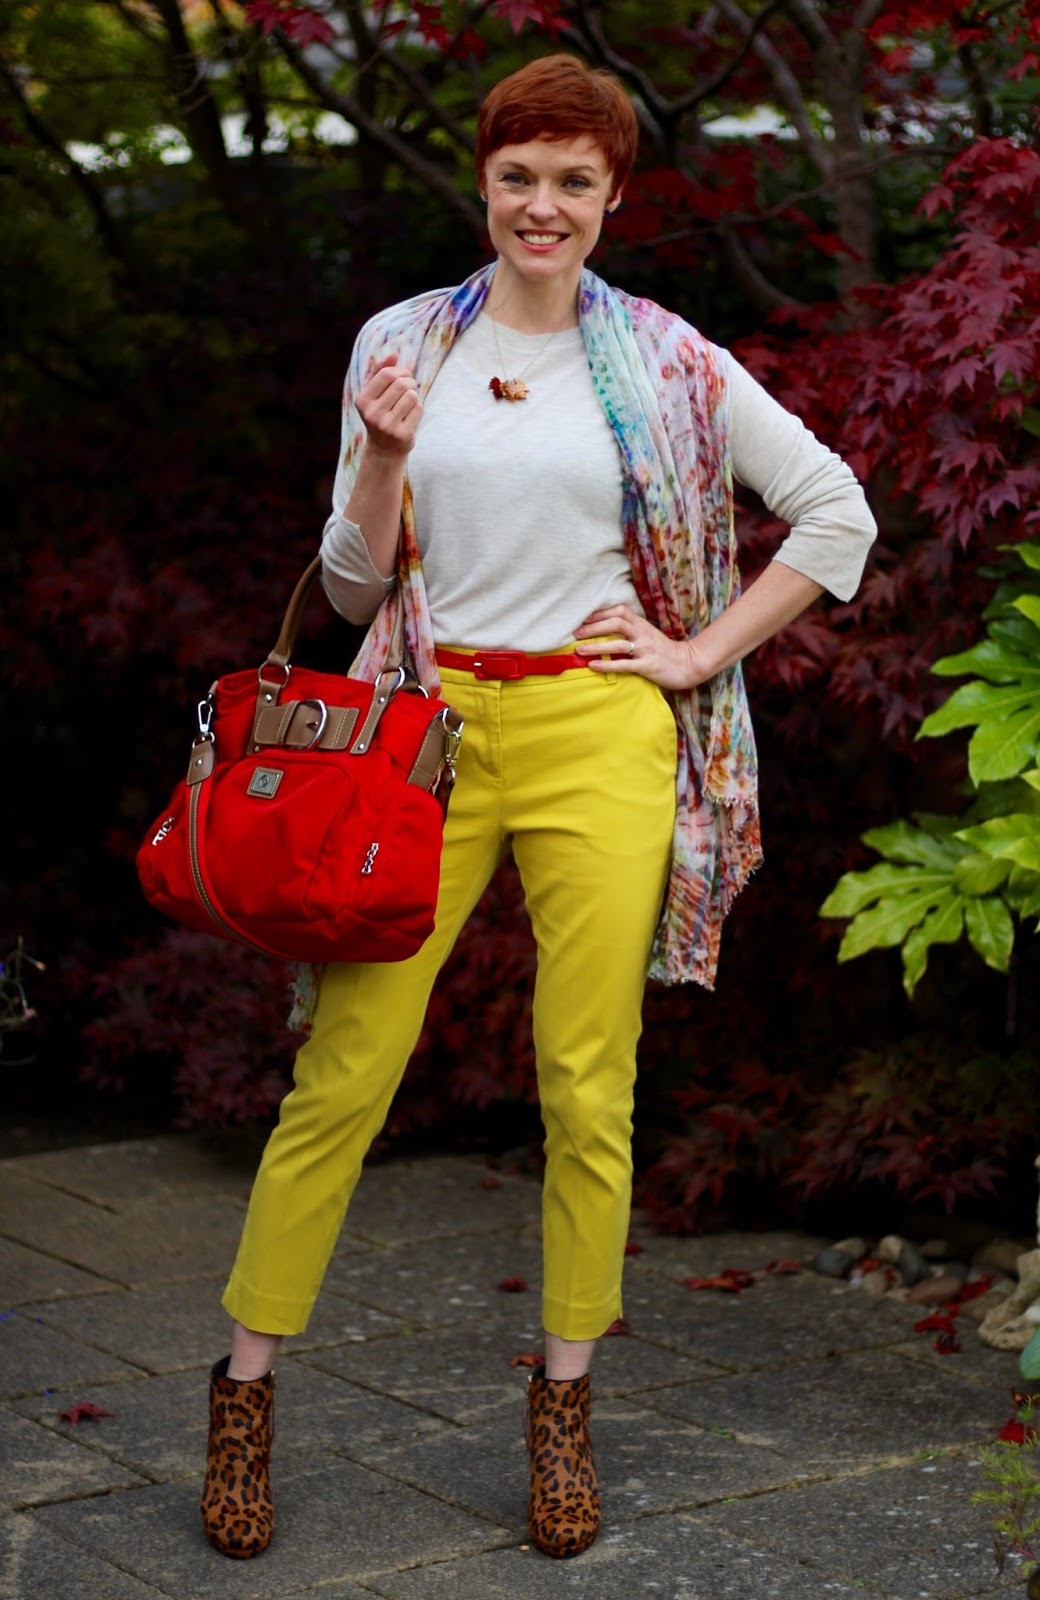 Yellow Trousers in Autumn, with Leopard & Red!